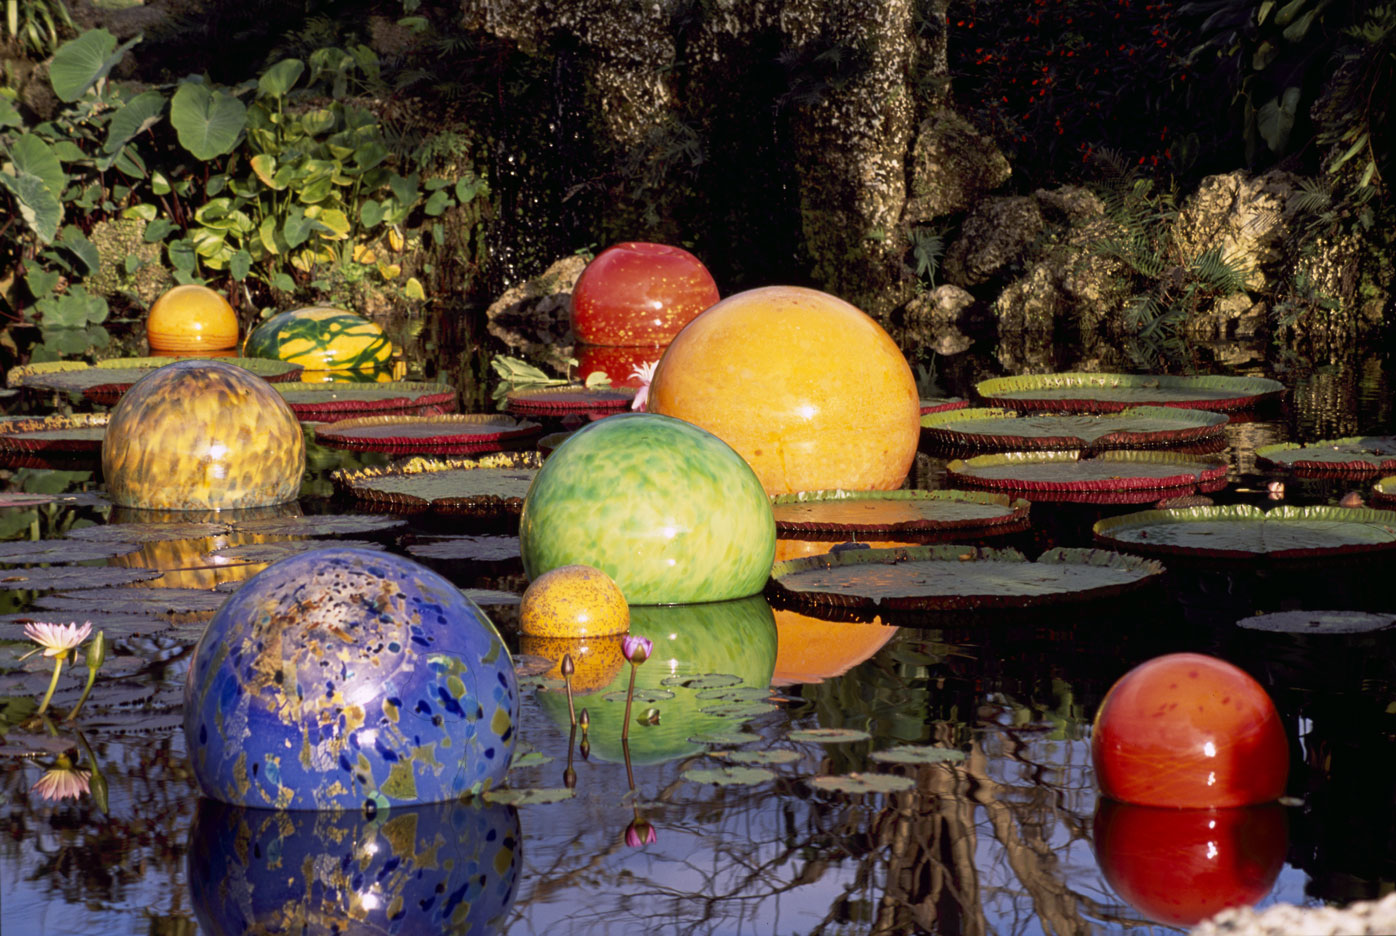 Dale chihuly saint lucia sculpture park - What time does victoria gardens open ...